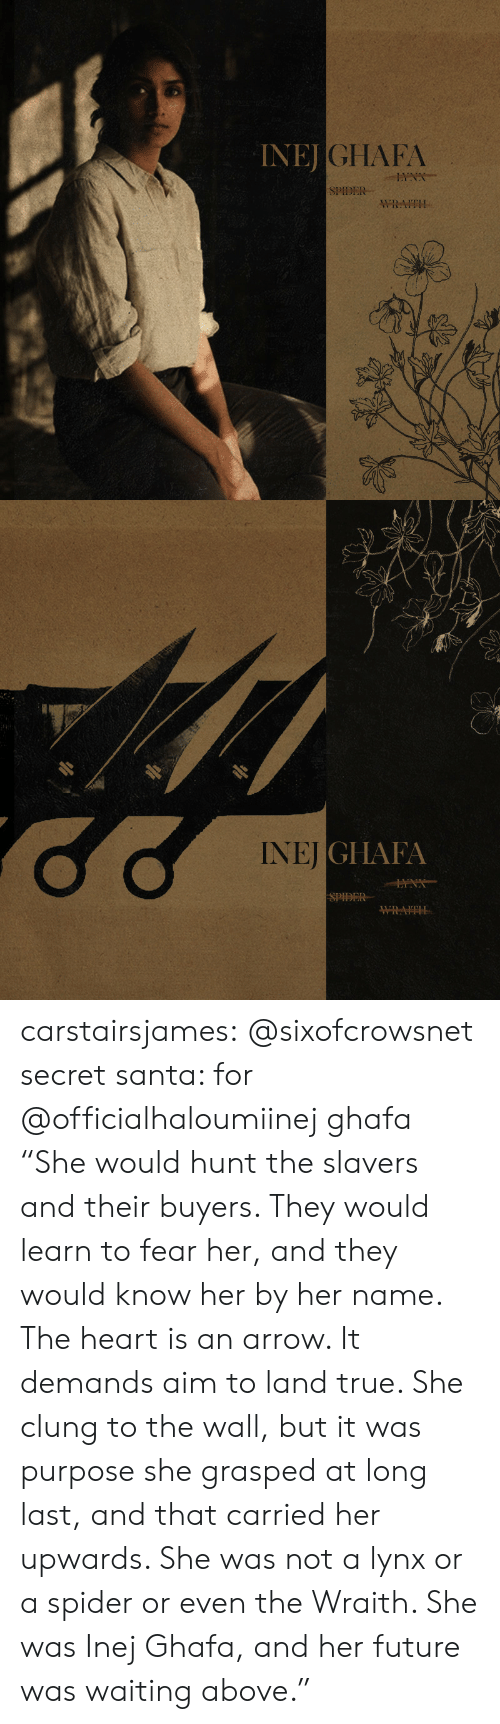 """Future, Spider, and Target: INEJ  JGHAFA  SPIDER  WRAITH   NEİGI IAIA  SPIDER carstairsjames:   @sixofcrowsnet secret santa: for @officialhaloumiinej ghafa   """"She would hunt the slavers and their buyers. They would learn to fear her, and they would know her by her name. The heart is an arrow. It demands aim to land true. She clung to the wall, but it was purpose she grasped at long last, and that carried her upwards. She was not a lynx or a spider or even the Wraith. She was Inej Ghafa, and her future was waiting above."""""""